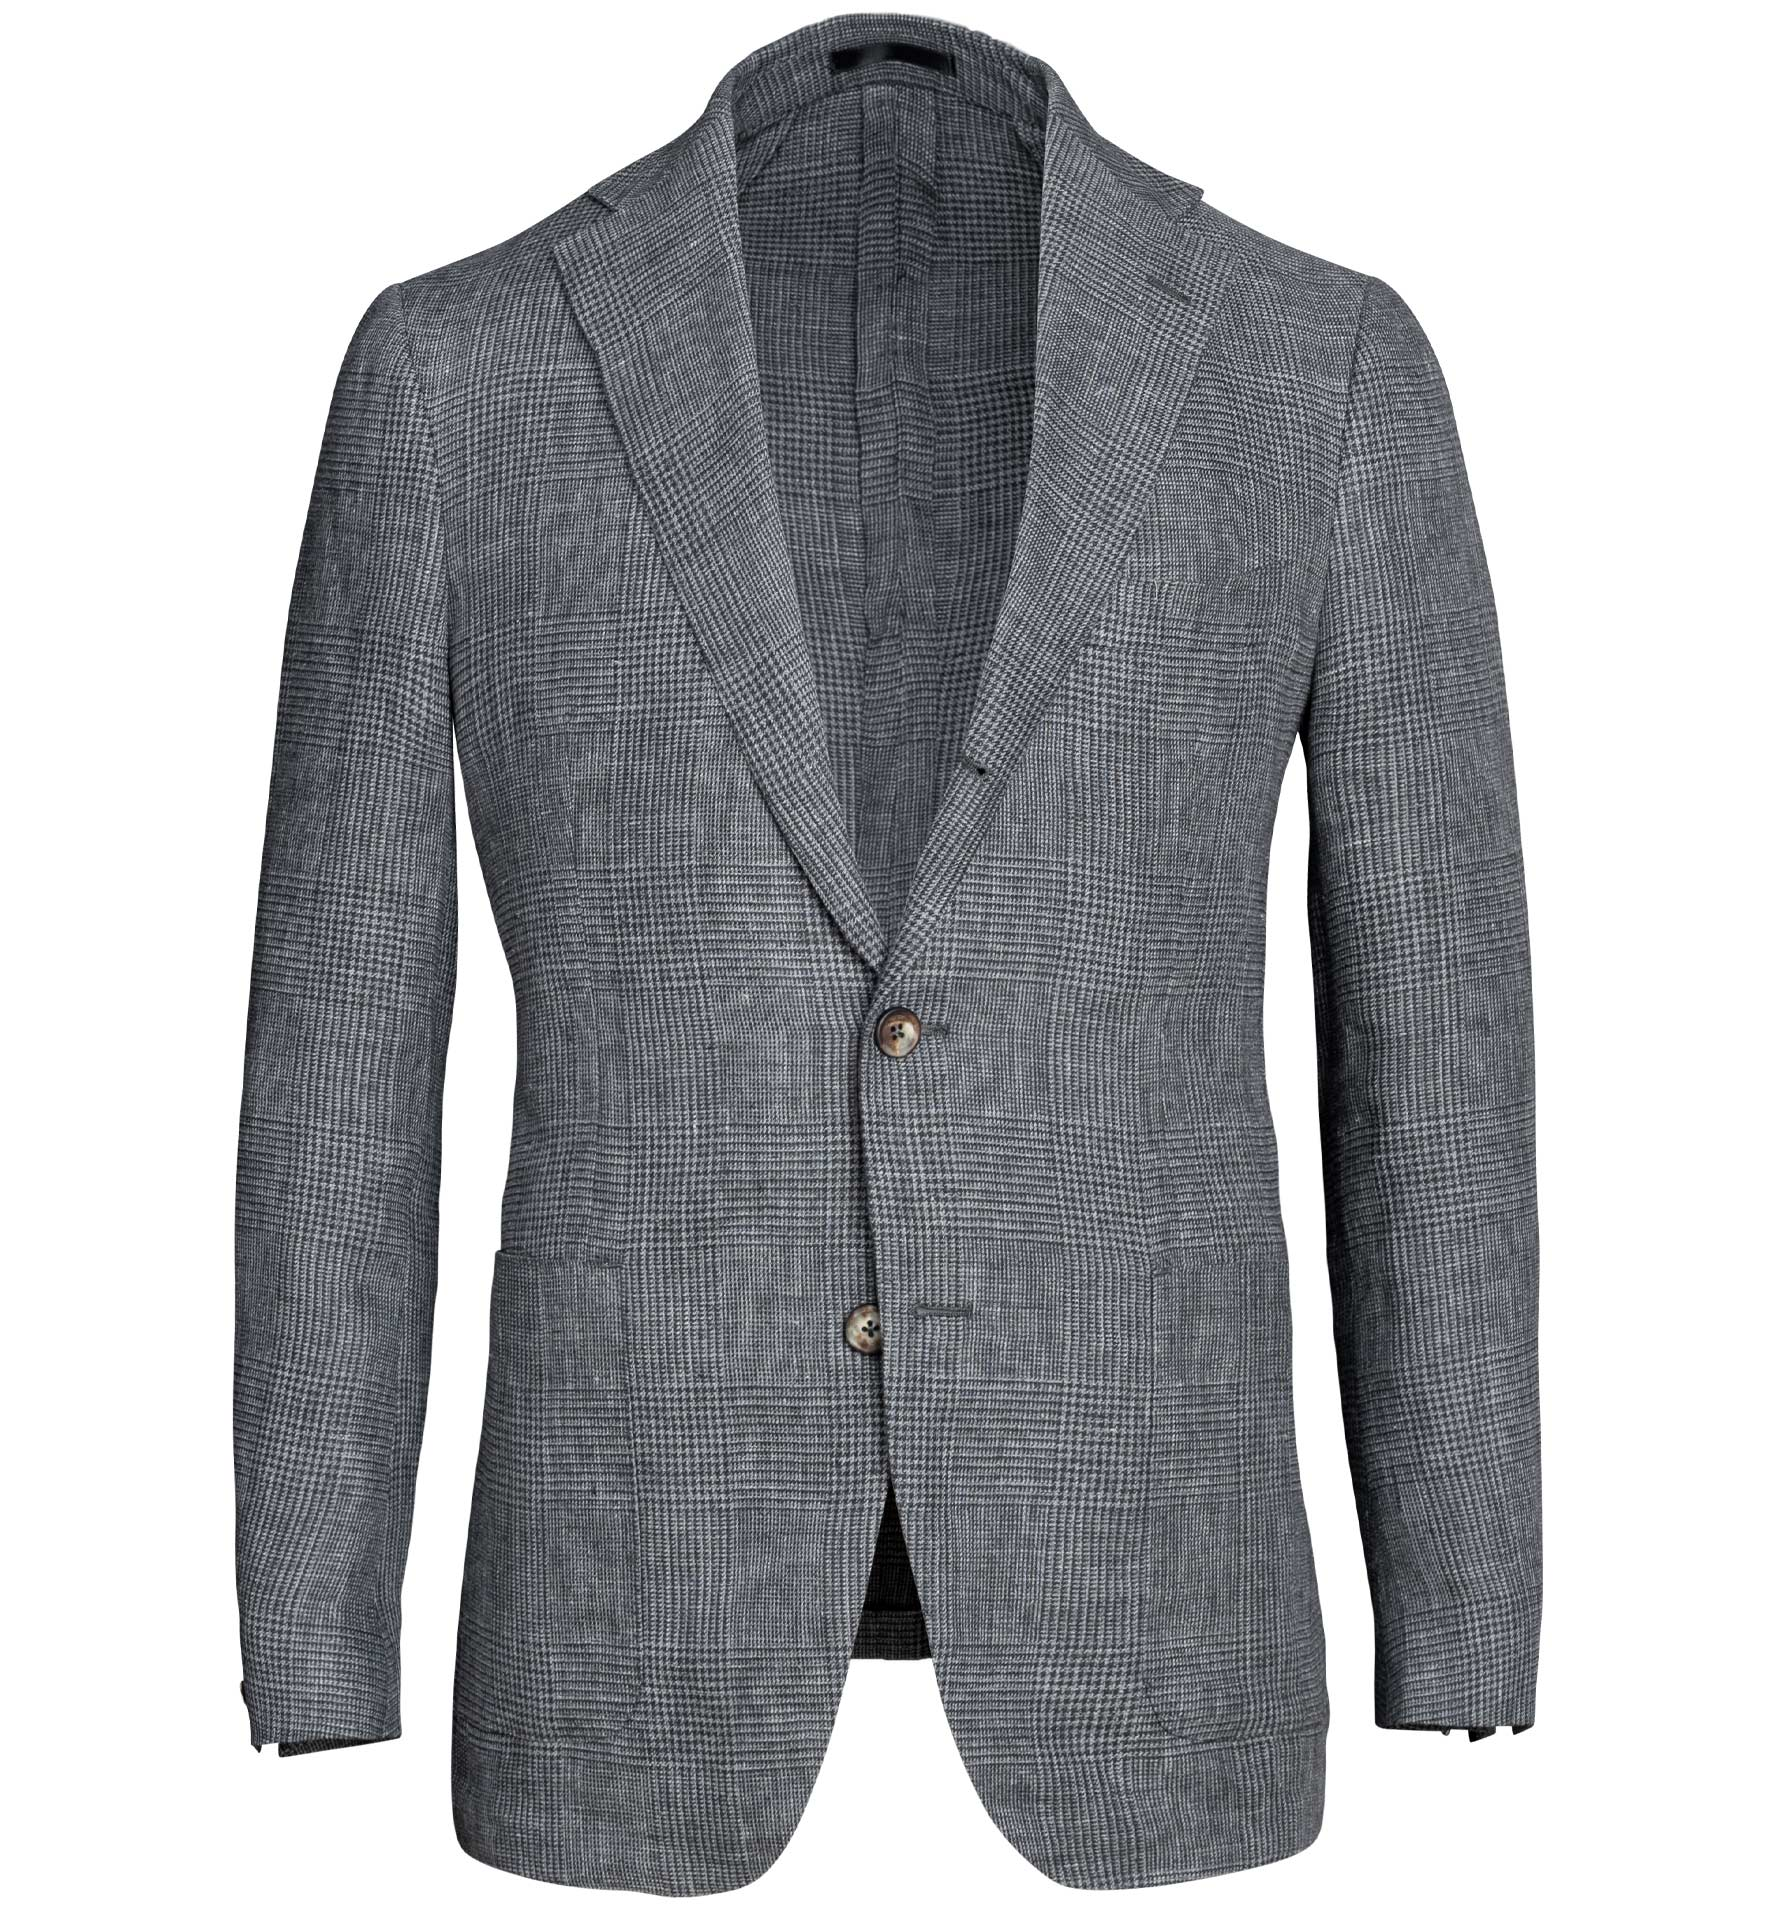 Zoom Image of Bedford Grey Melange Glen Plaid Linen Jacket